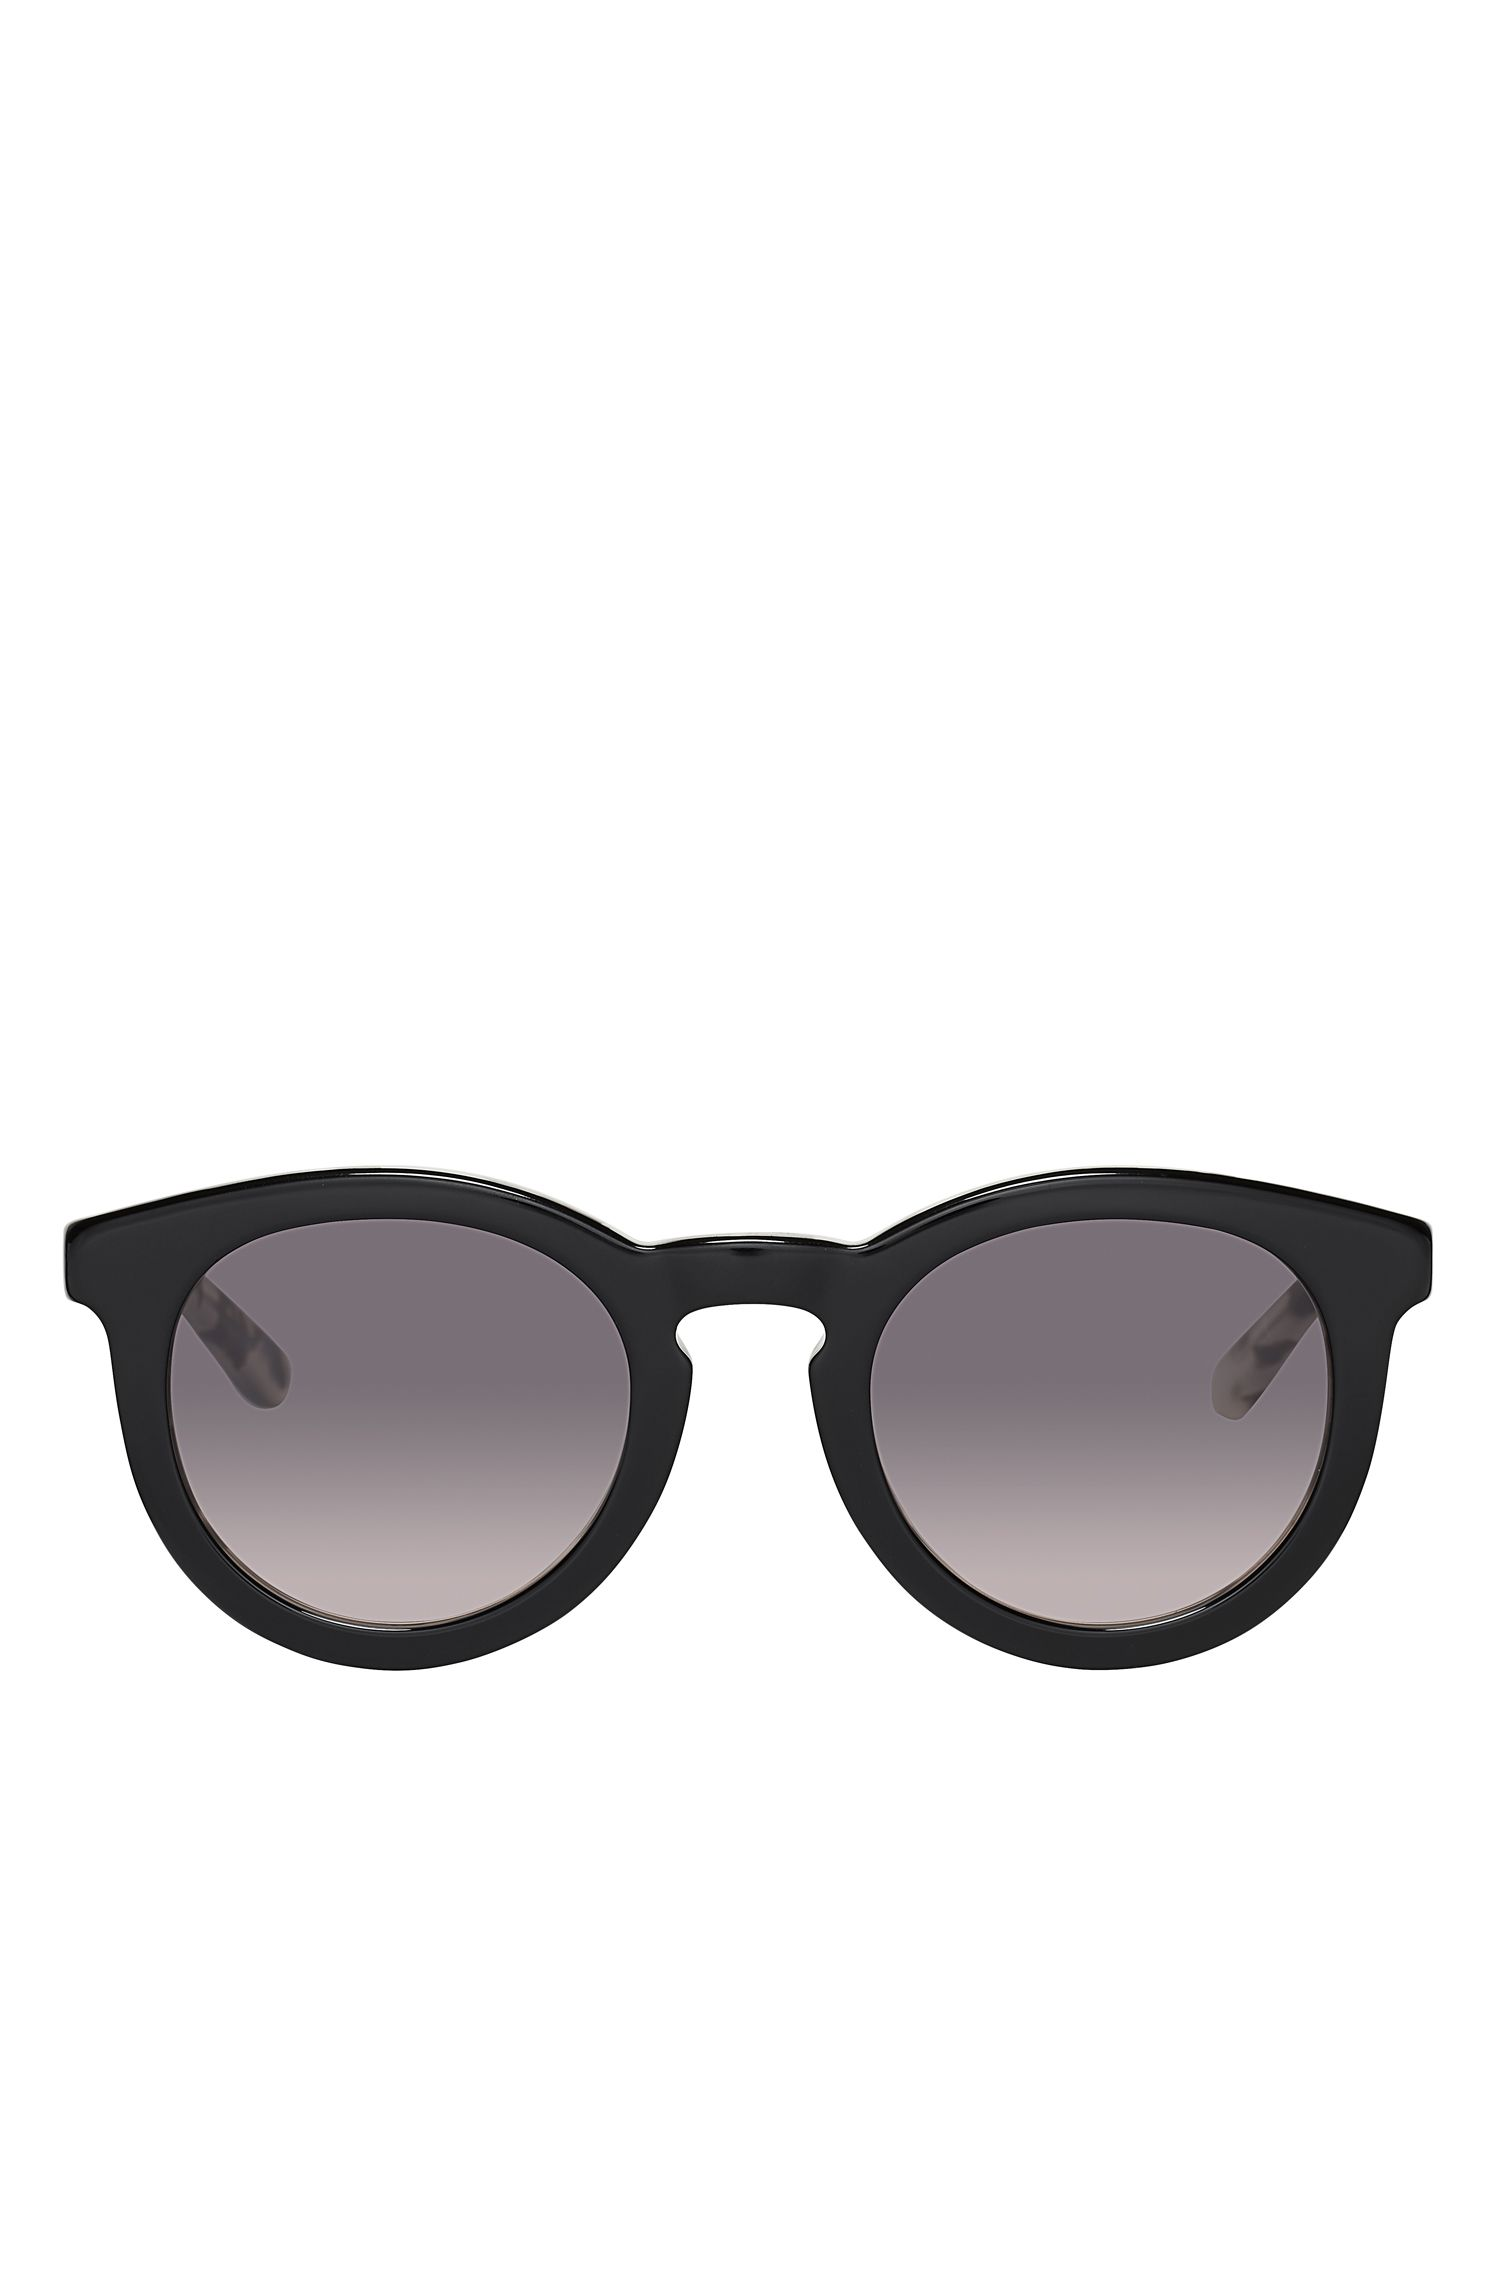 Gradient Lenses Roud Cateye Sunglasses | BOSS 0742S